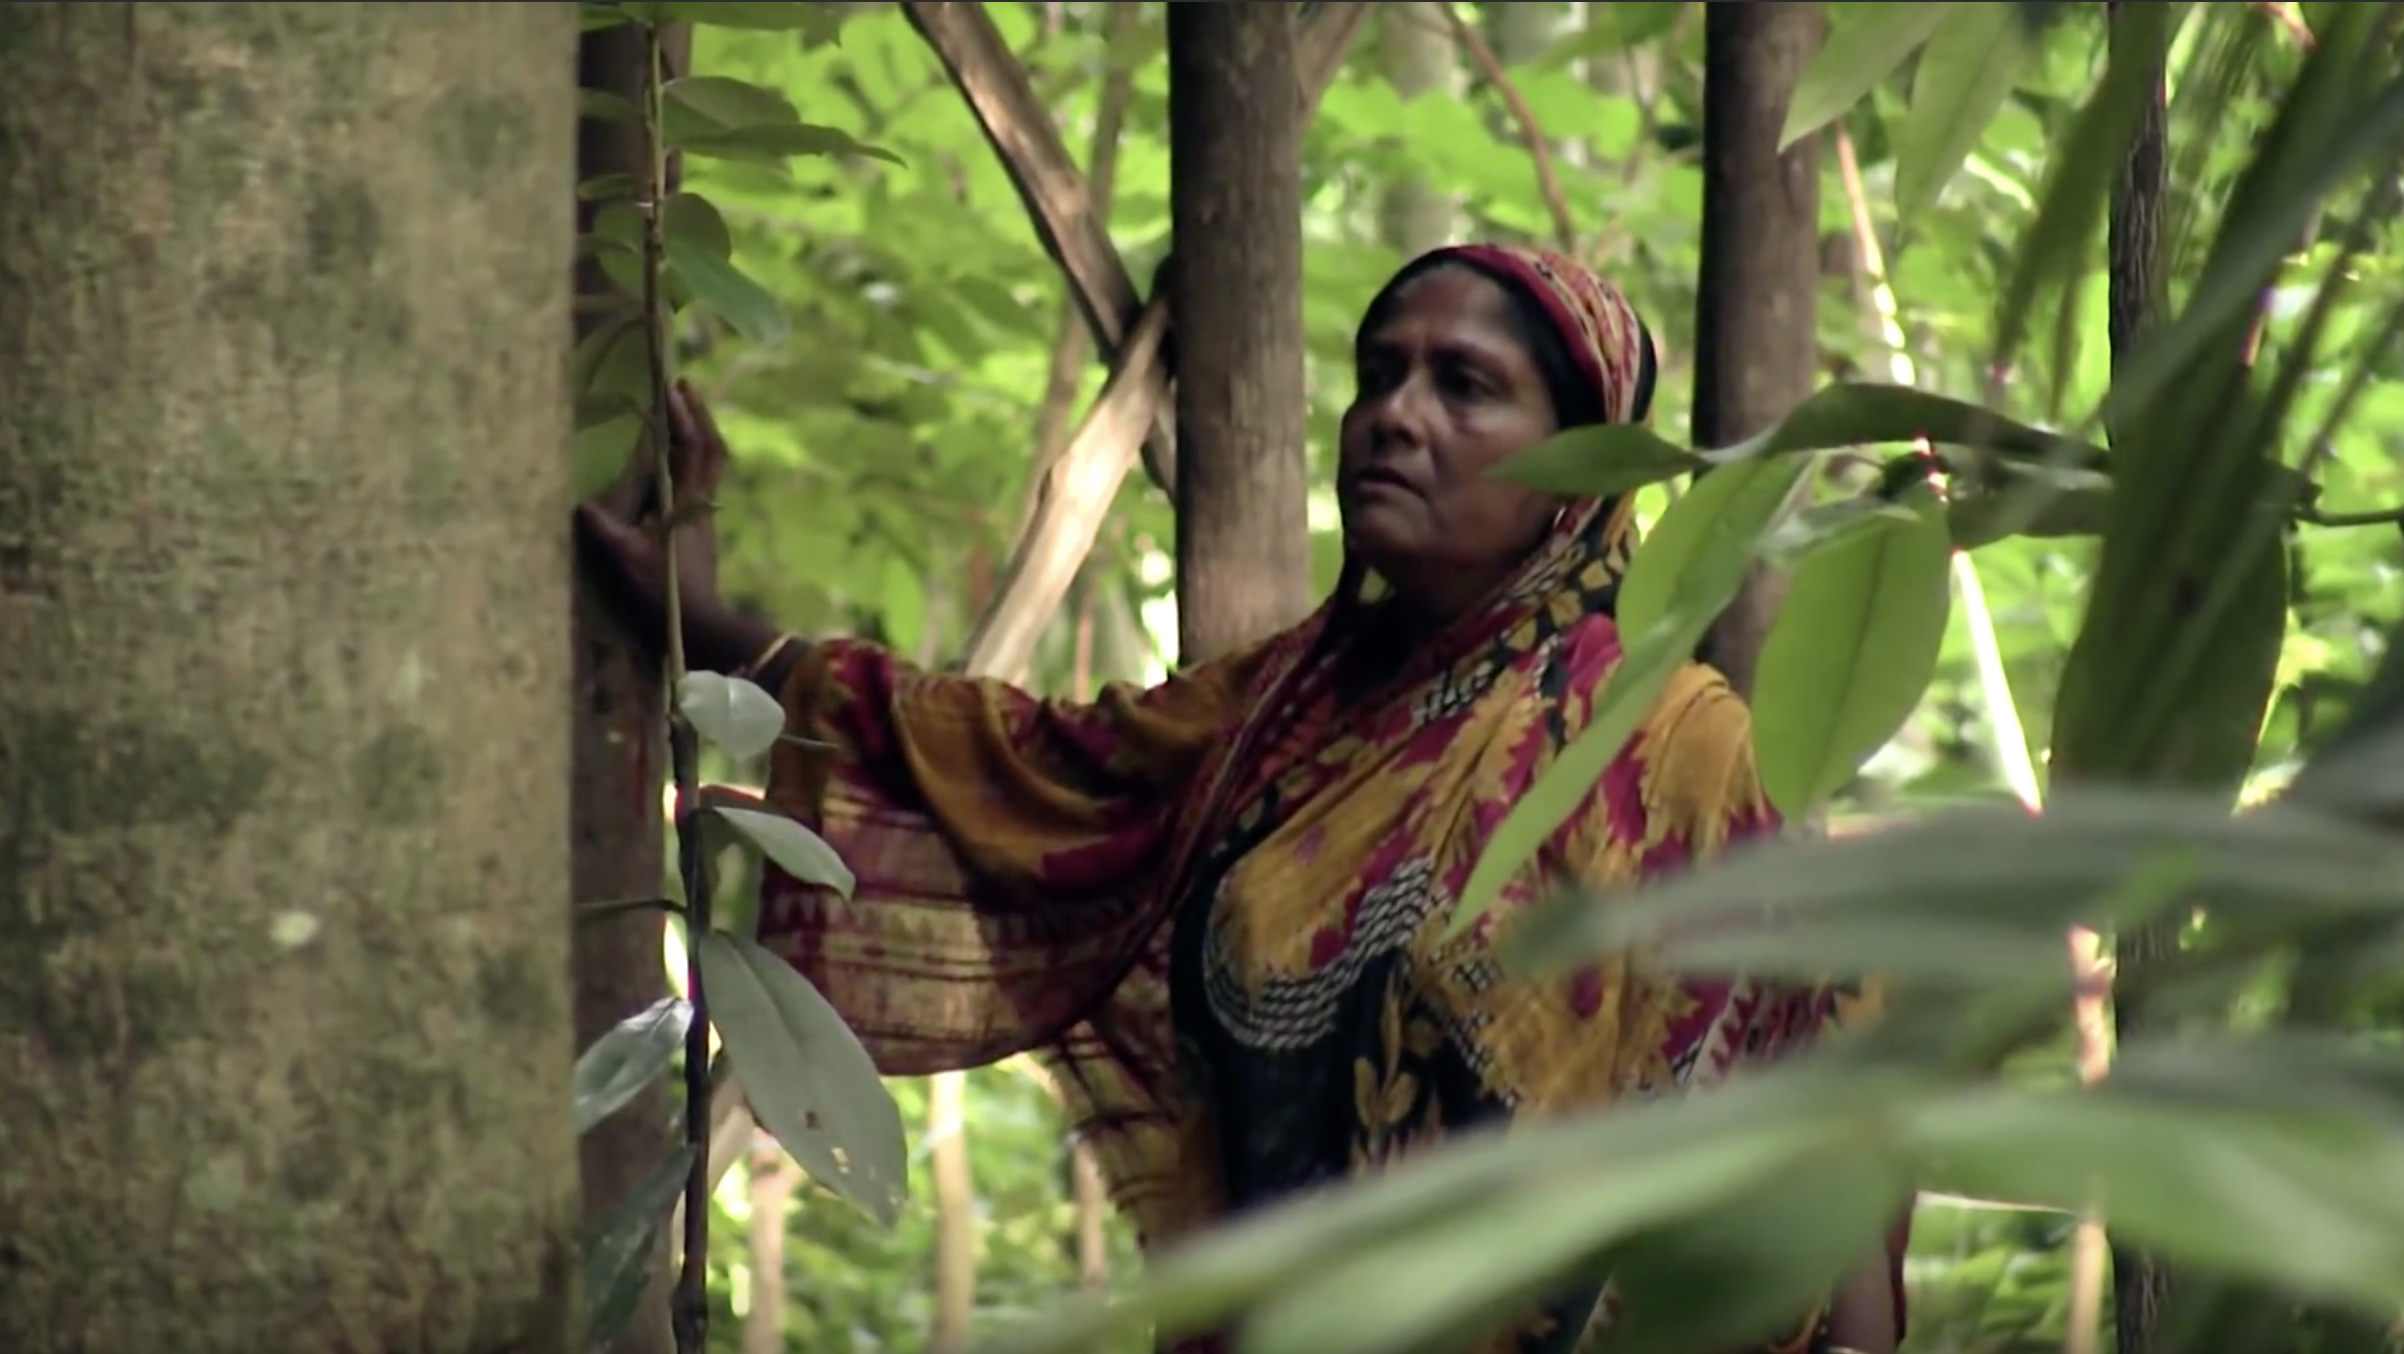 THE POISON THORN - Documentary Short | Bangladesh | Bengali | 2015 | Farzana Boby | 41 min